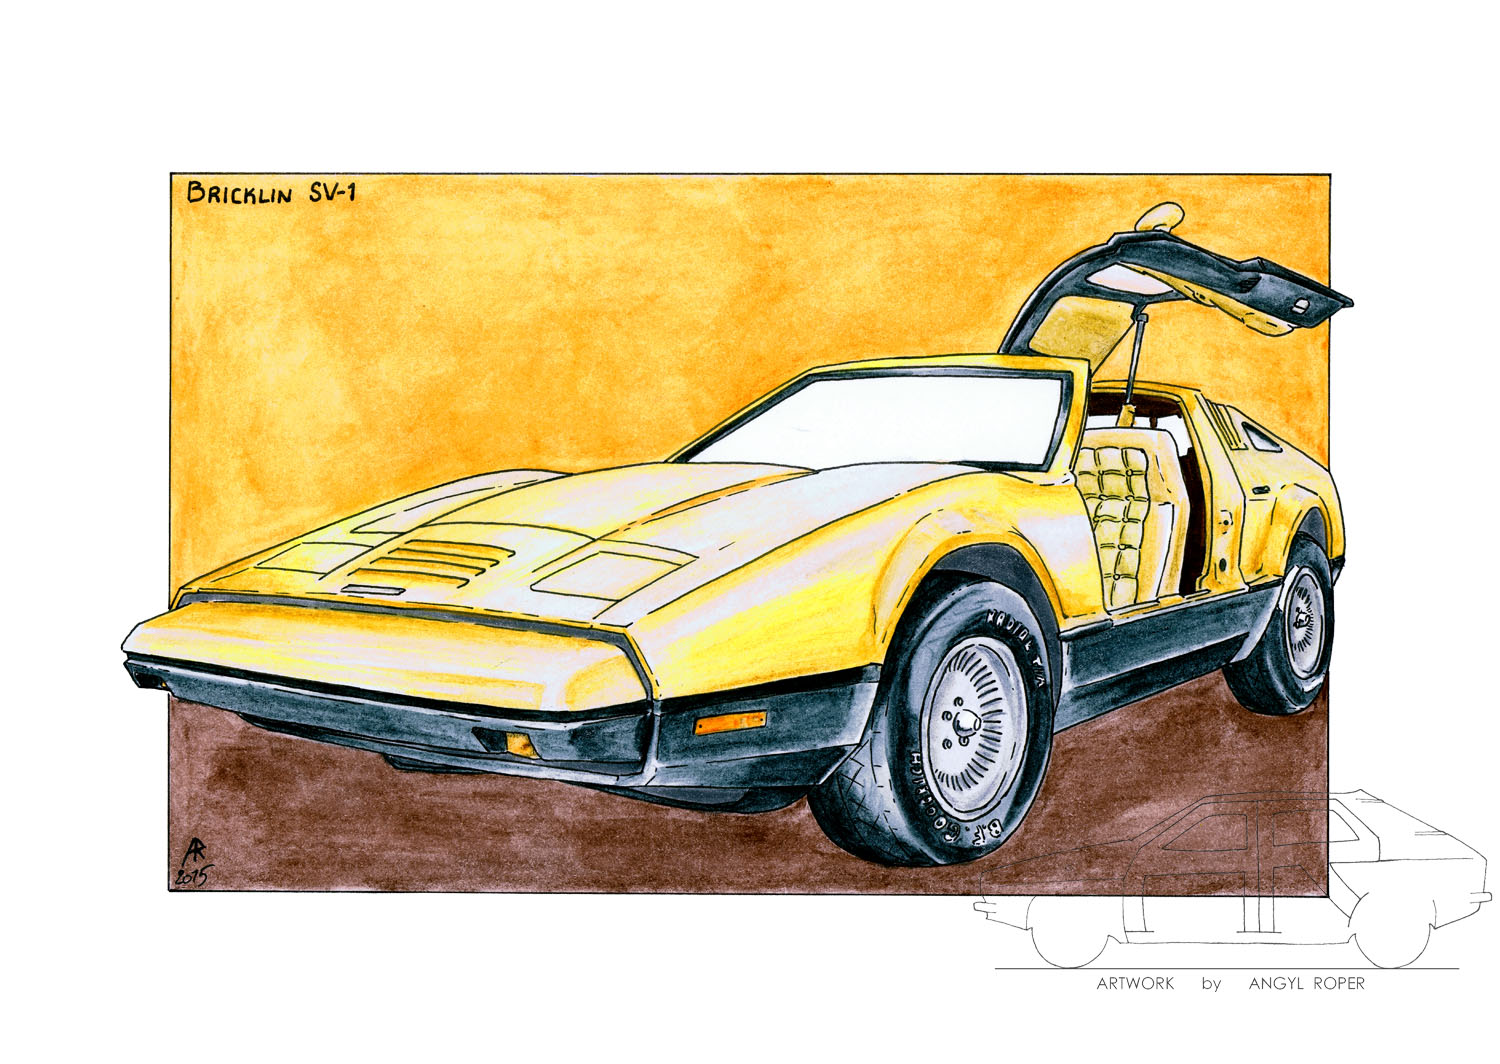 GoldBricklin.jpg